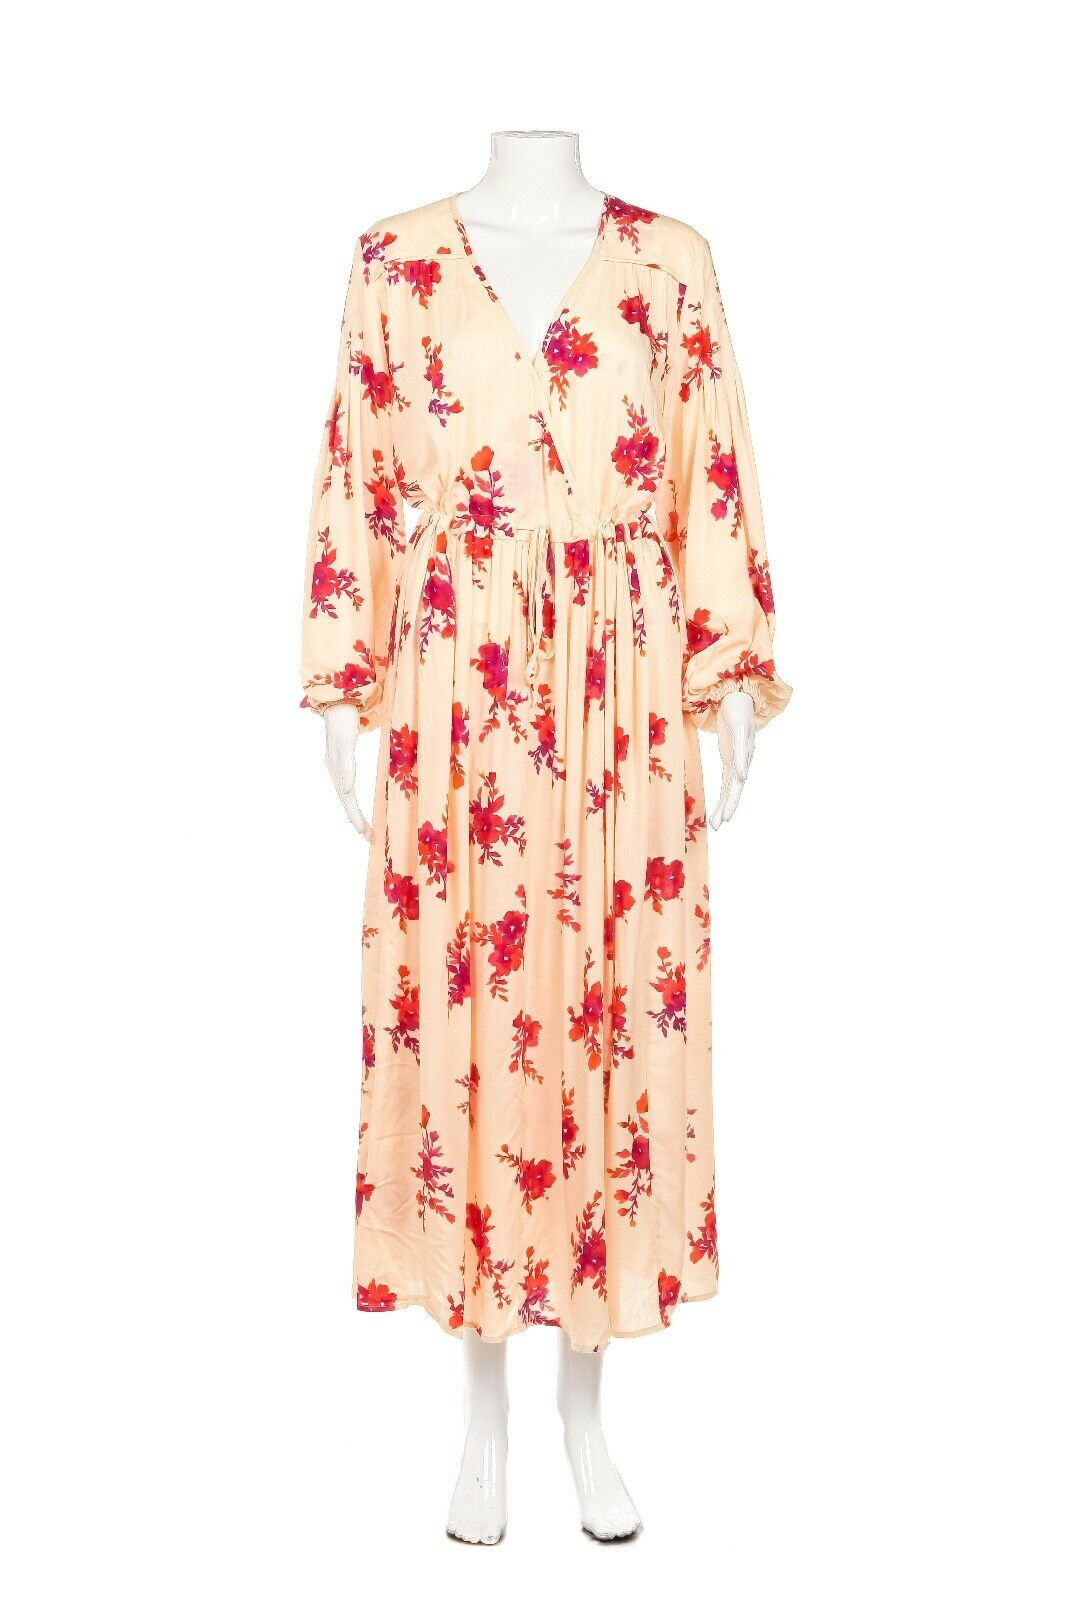 CHRISTY DAWN Delilah Midi Wrap Dress Size OS (New)